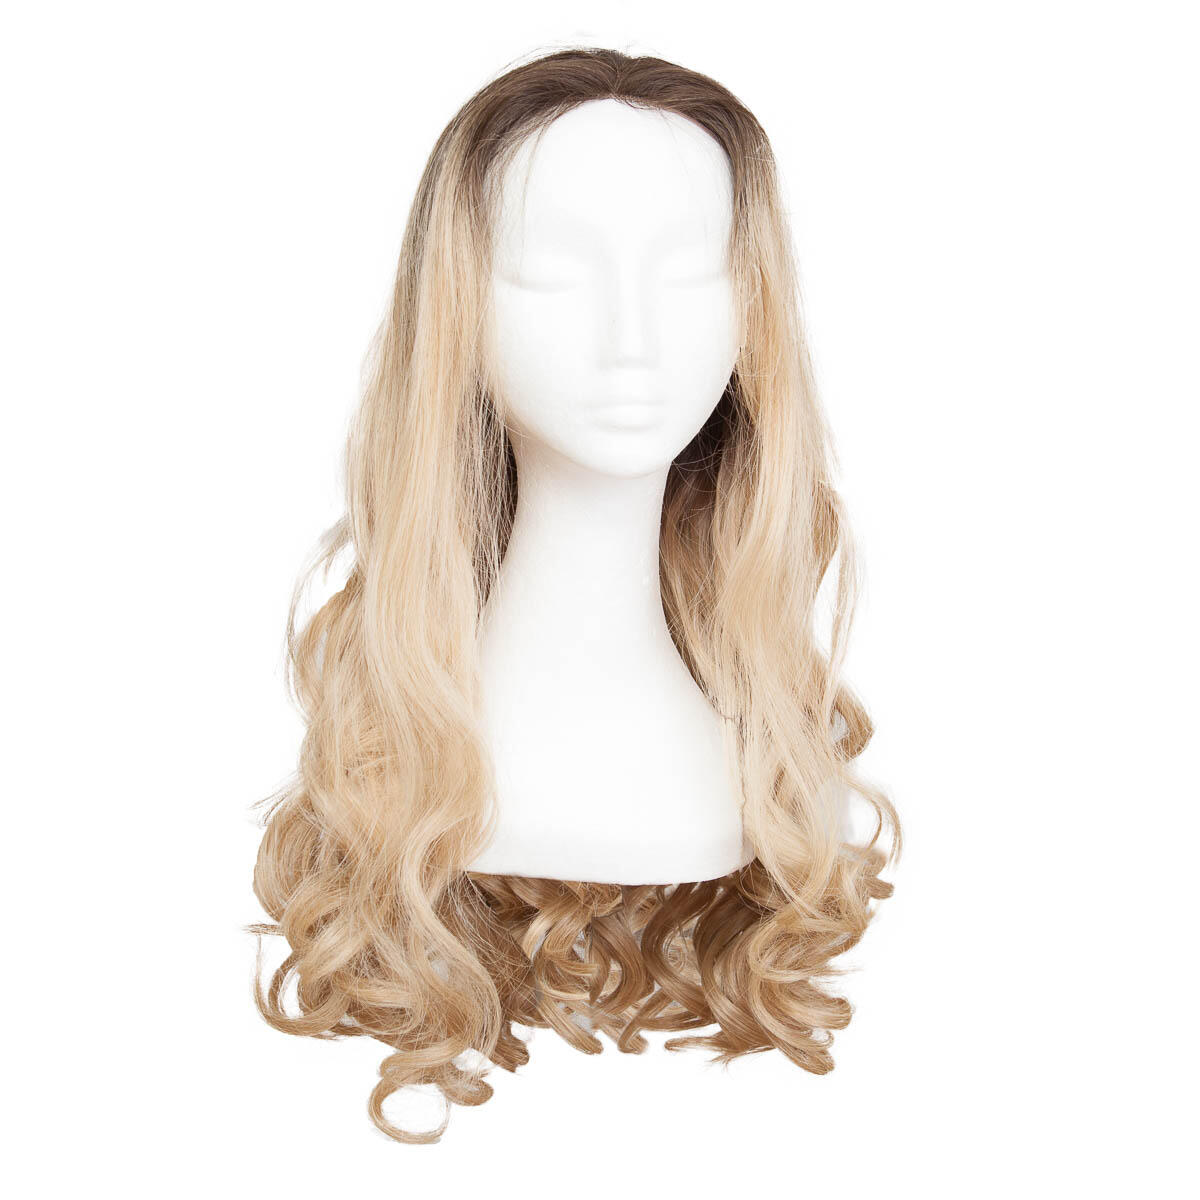 Lace Front Perücke Long Curly O2.3/9.0 Chocolate Brown/Scandinavian Blond 60 cm